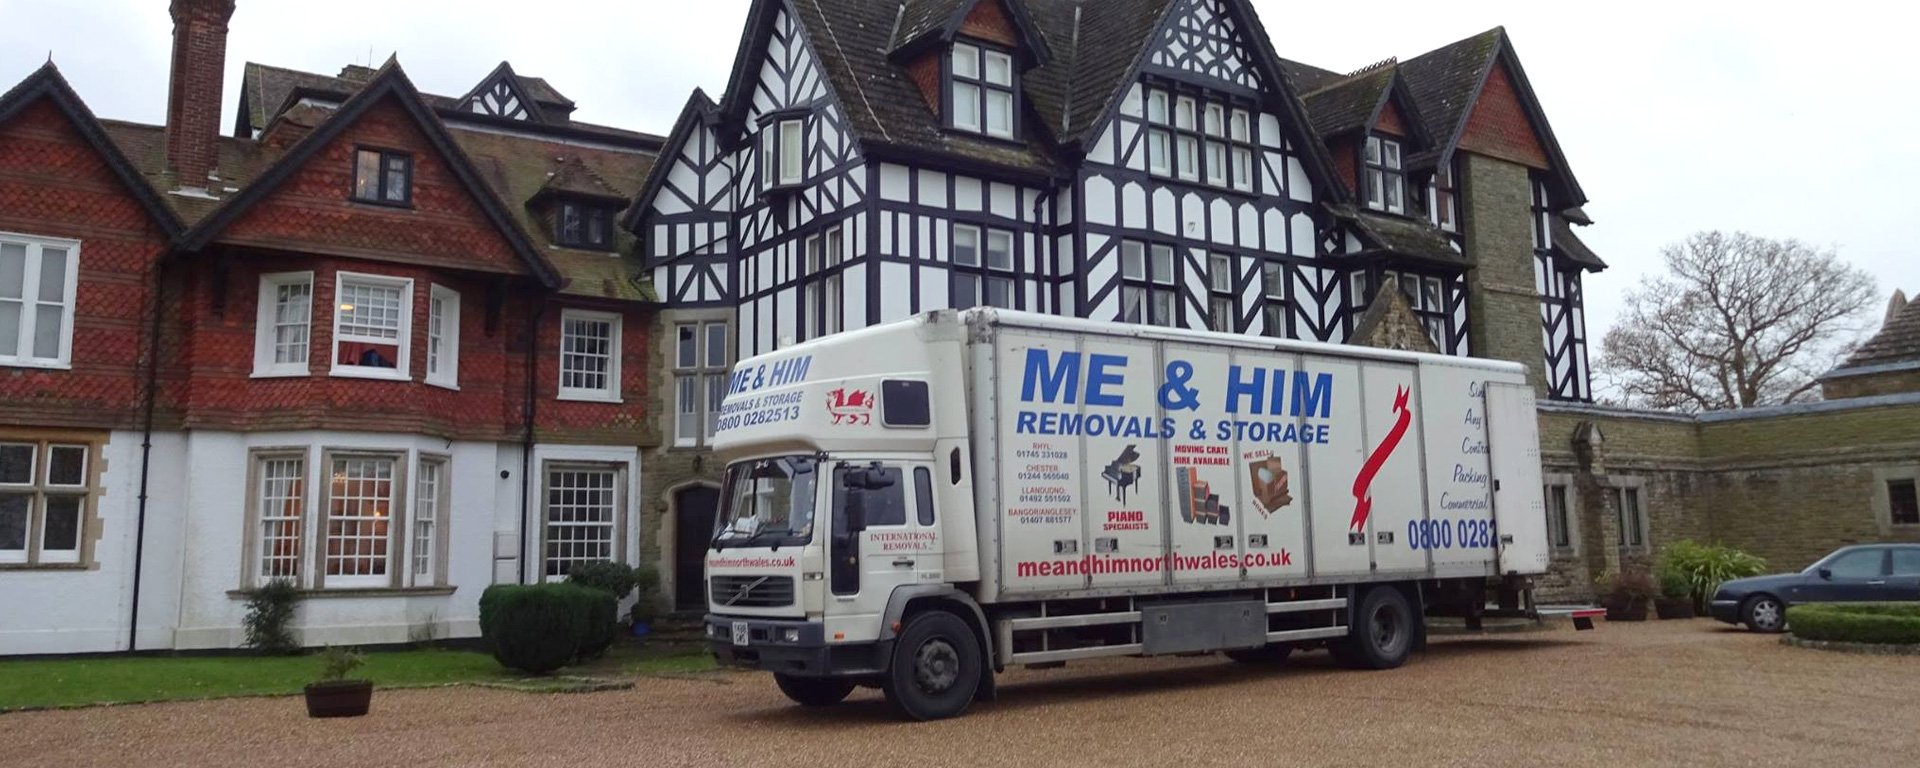 Me and Him Removals Company Vehicle